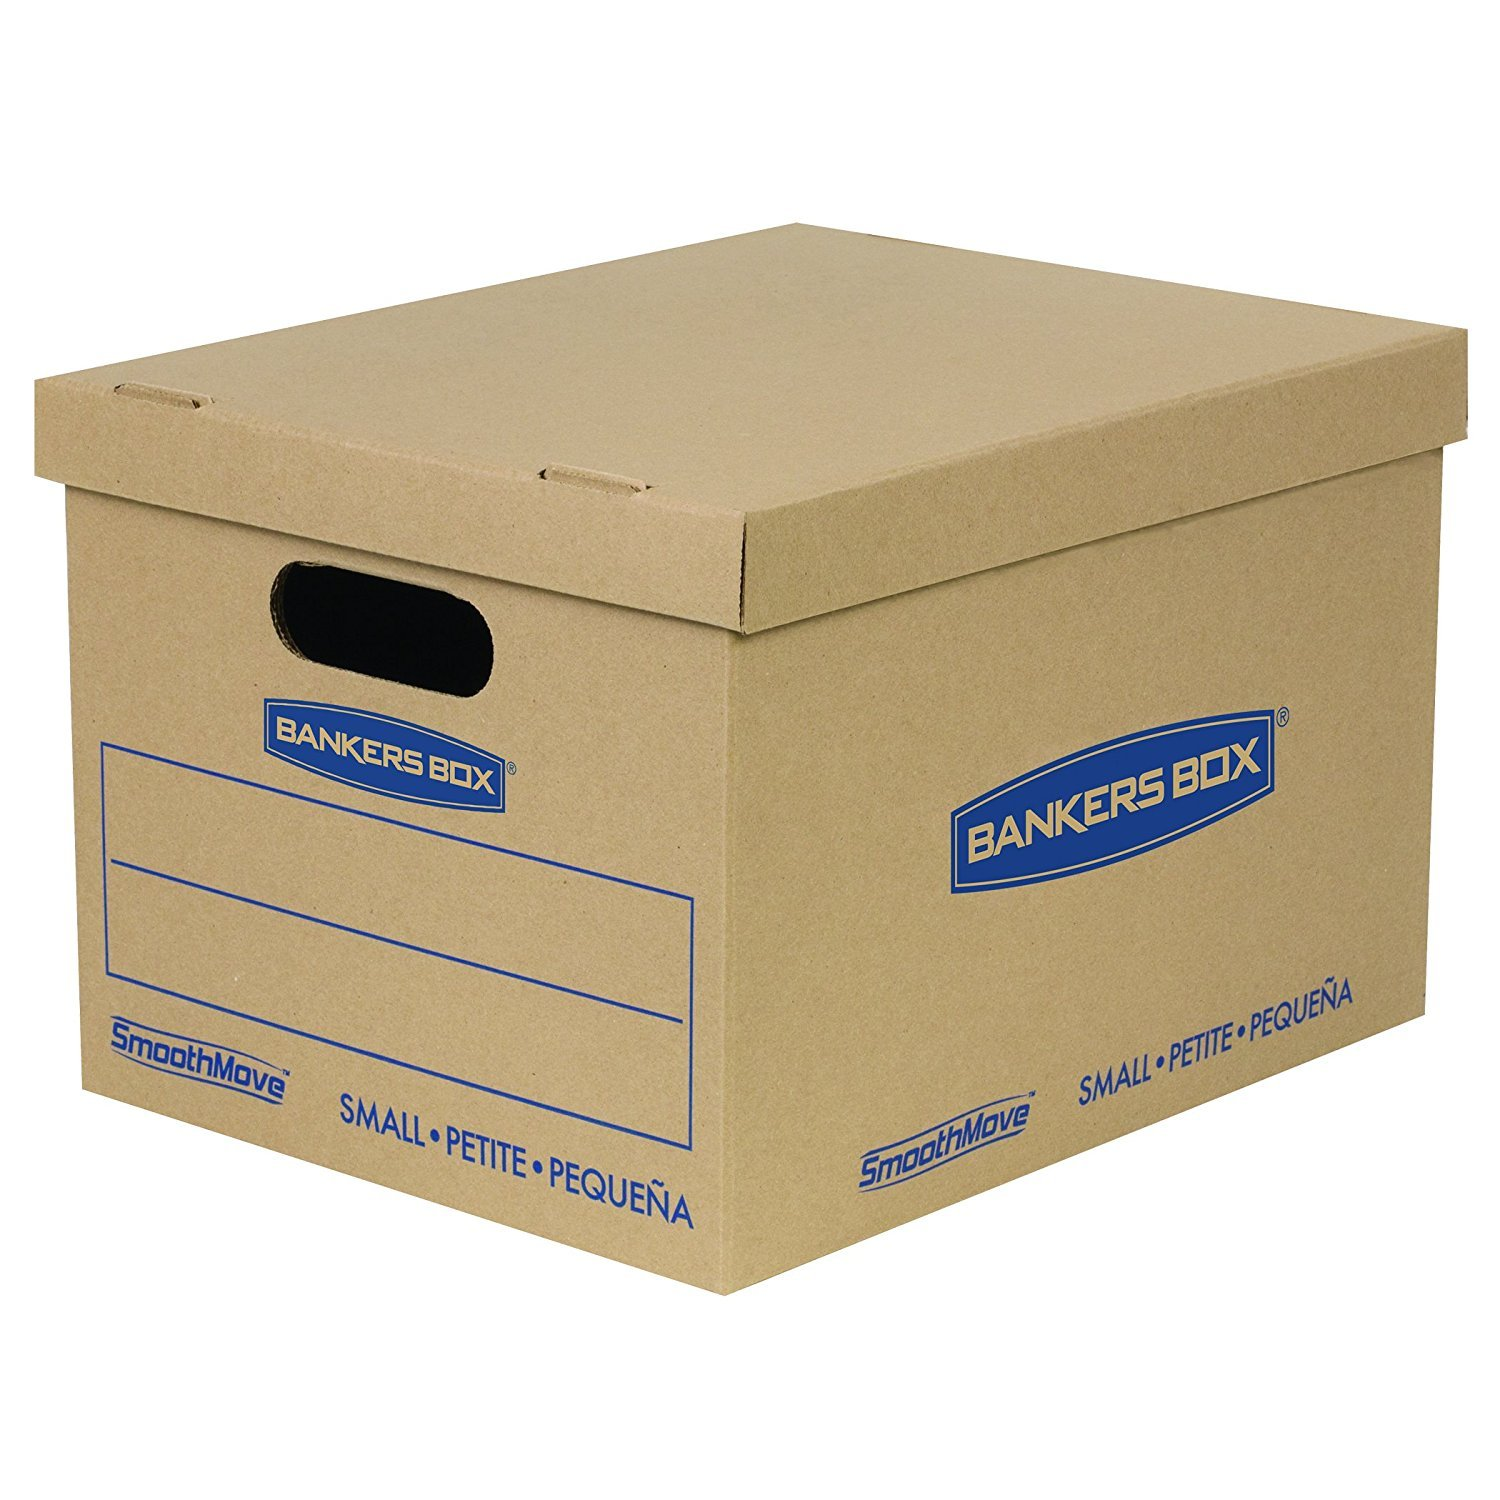 Bankers Box SmoothMove Classic Moving Boxes, Tape-Free Assembly, Small, 15 x 12 x 10 Inches, 10 Pack (7714203) by Bankers Box